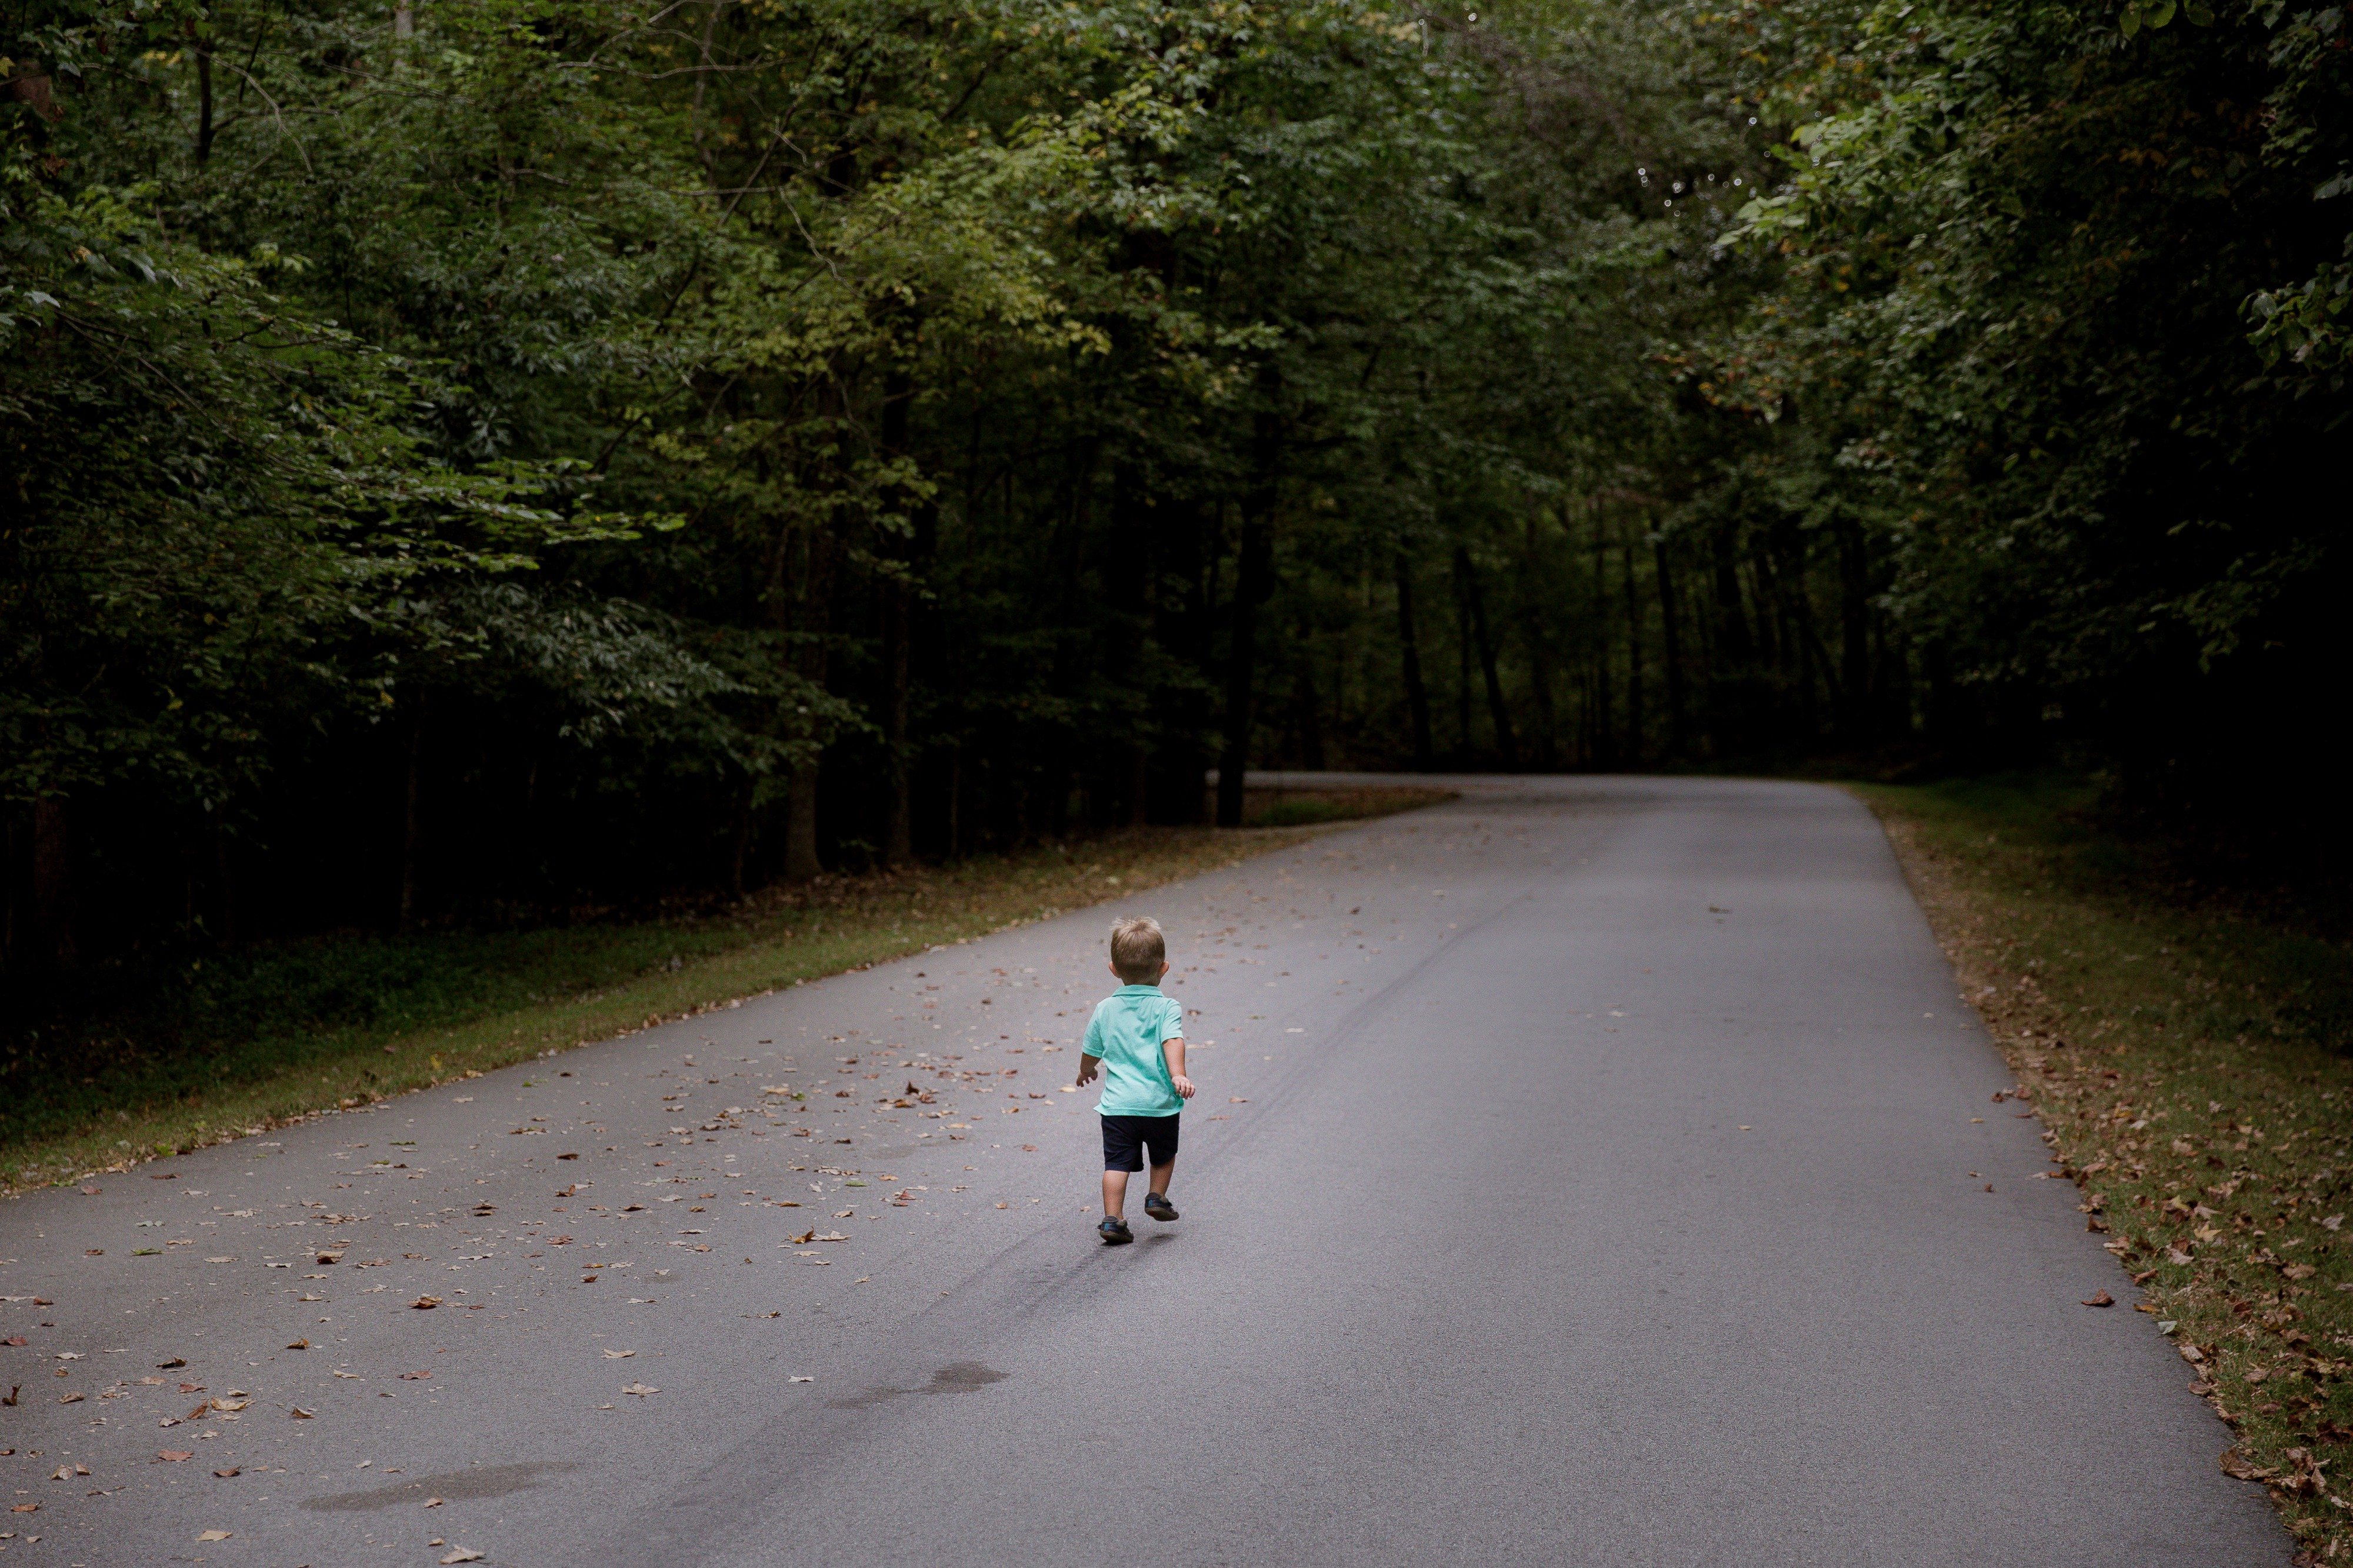 An adventerous child learning about the road of life